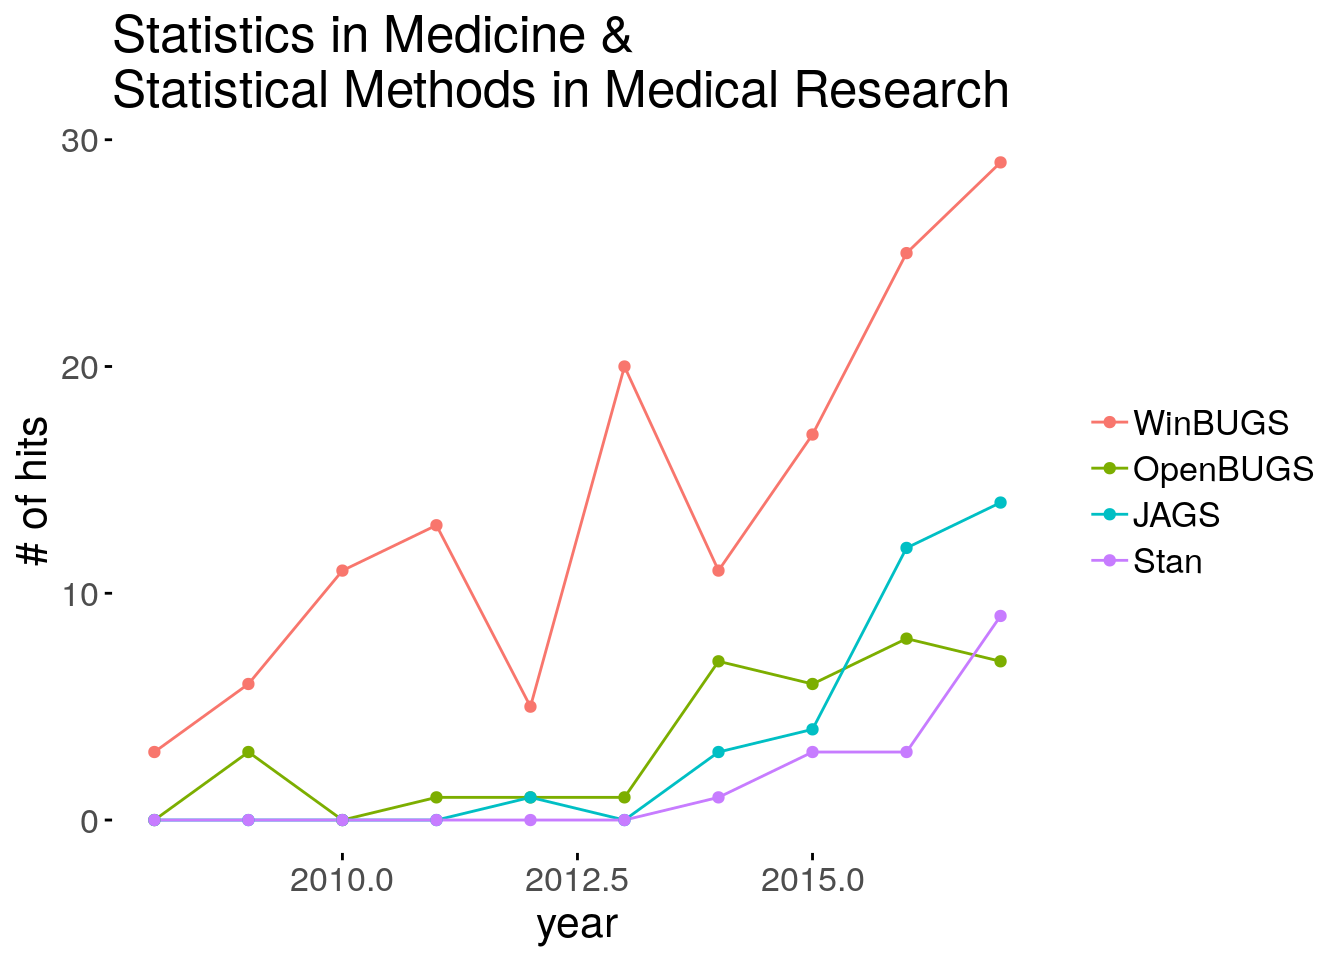 Scholarly Bayesian papers within Statistics in Medicine and Statistical Methods in Medical Research.